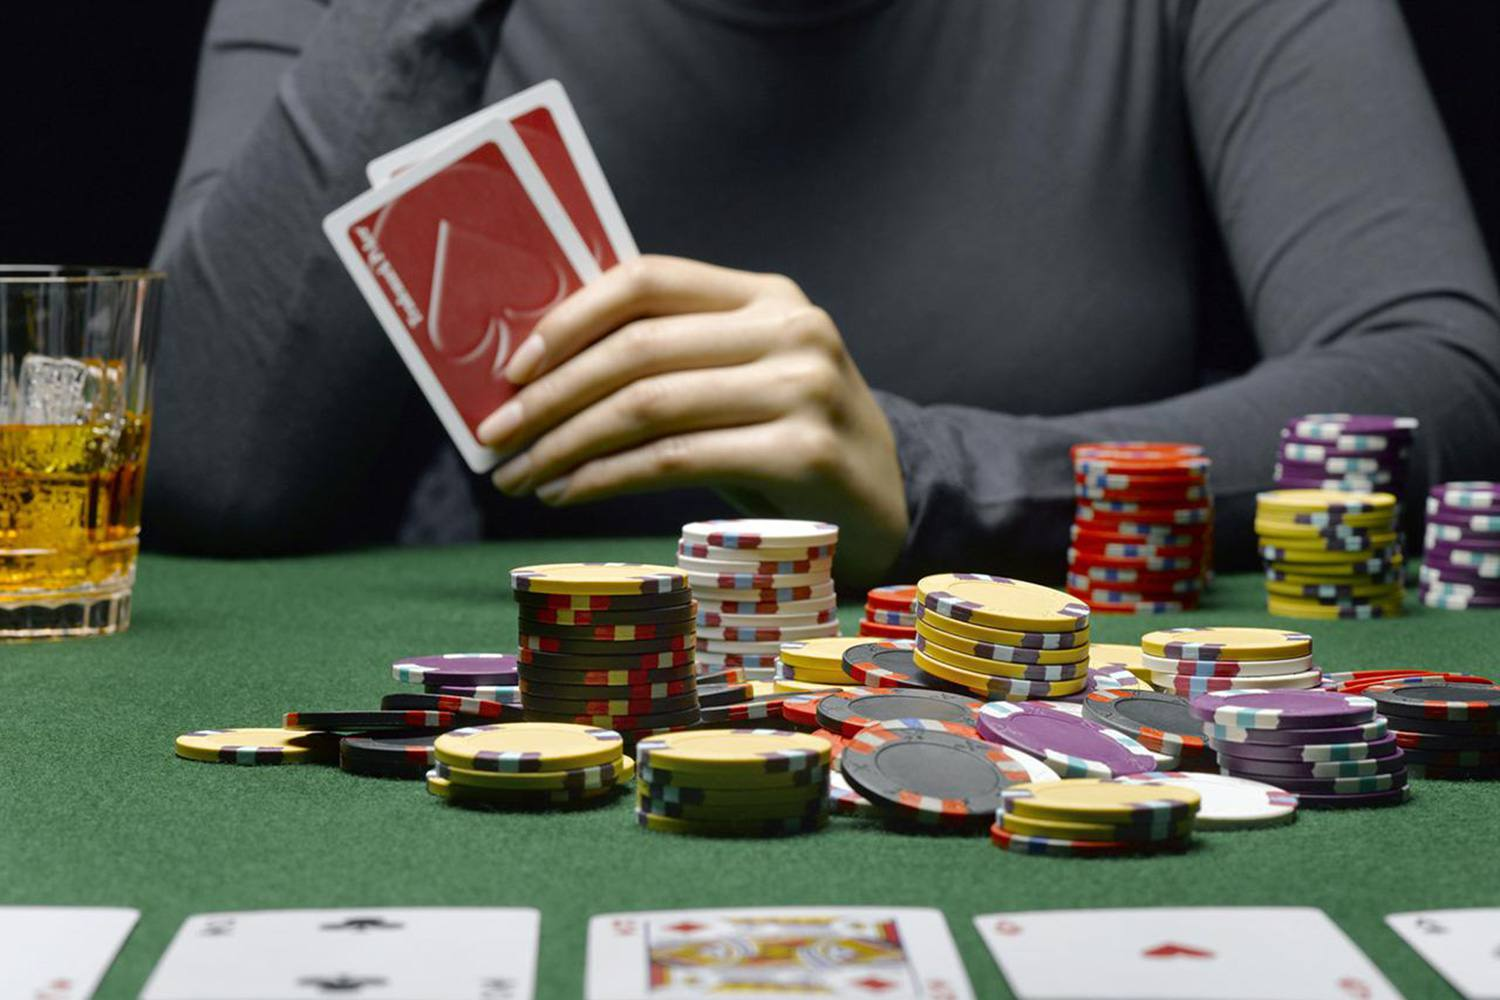 Personal Freeroll Tournaments - A Great Bankroll Builder For New Poker Players